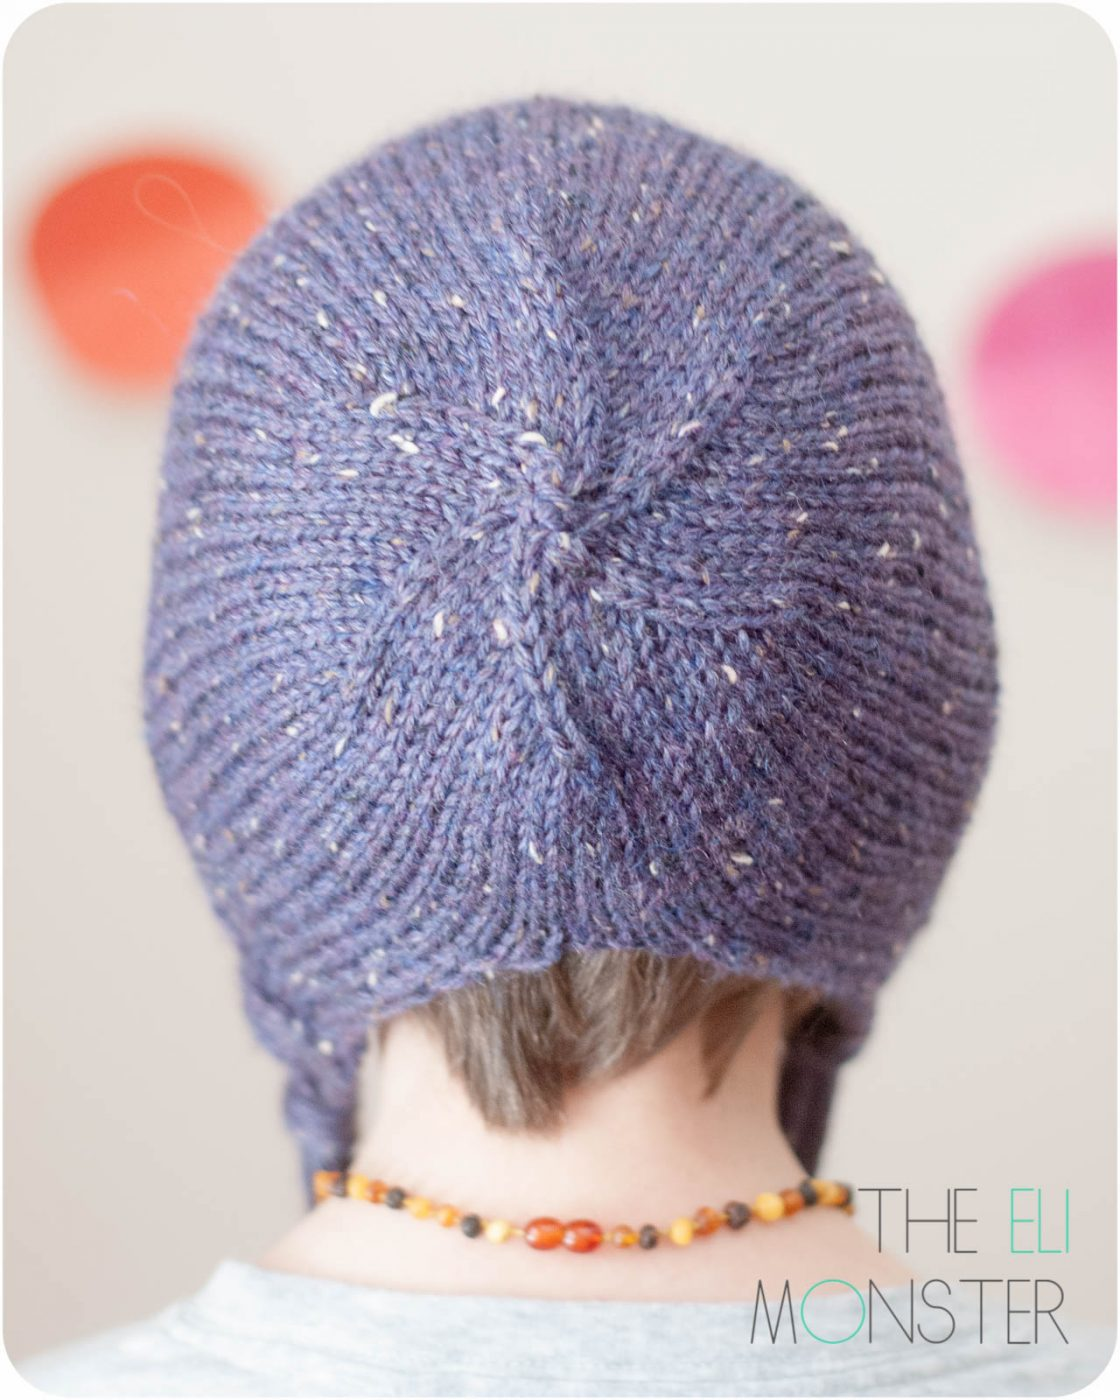 The Flette Bonnet Knitting Pattern for Sizes Baby-Adult 2c13c8c6fd4